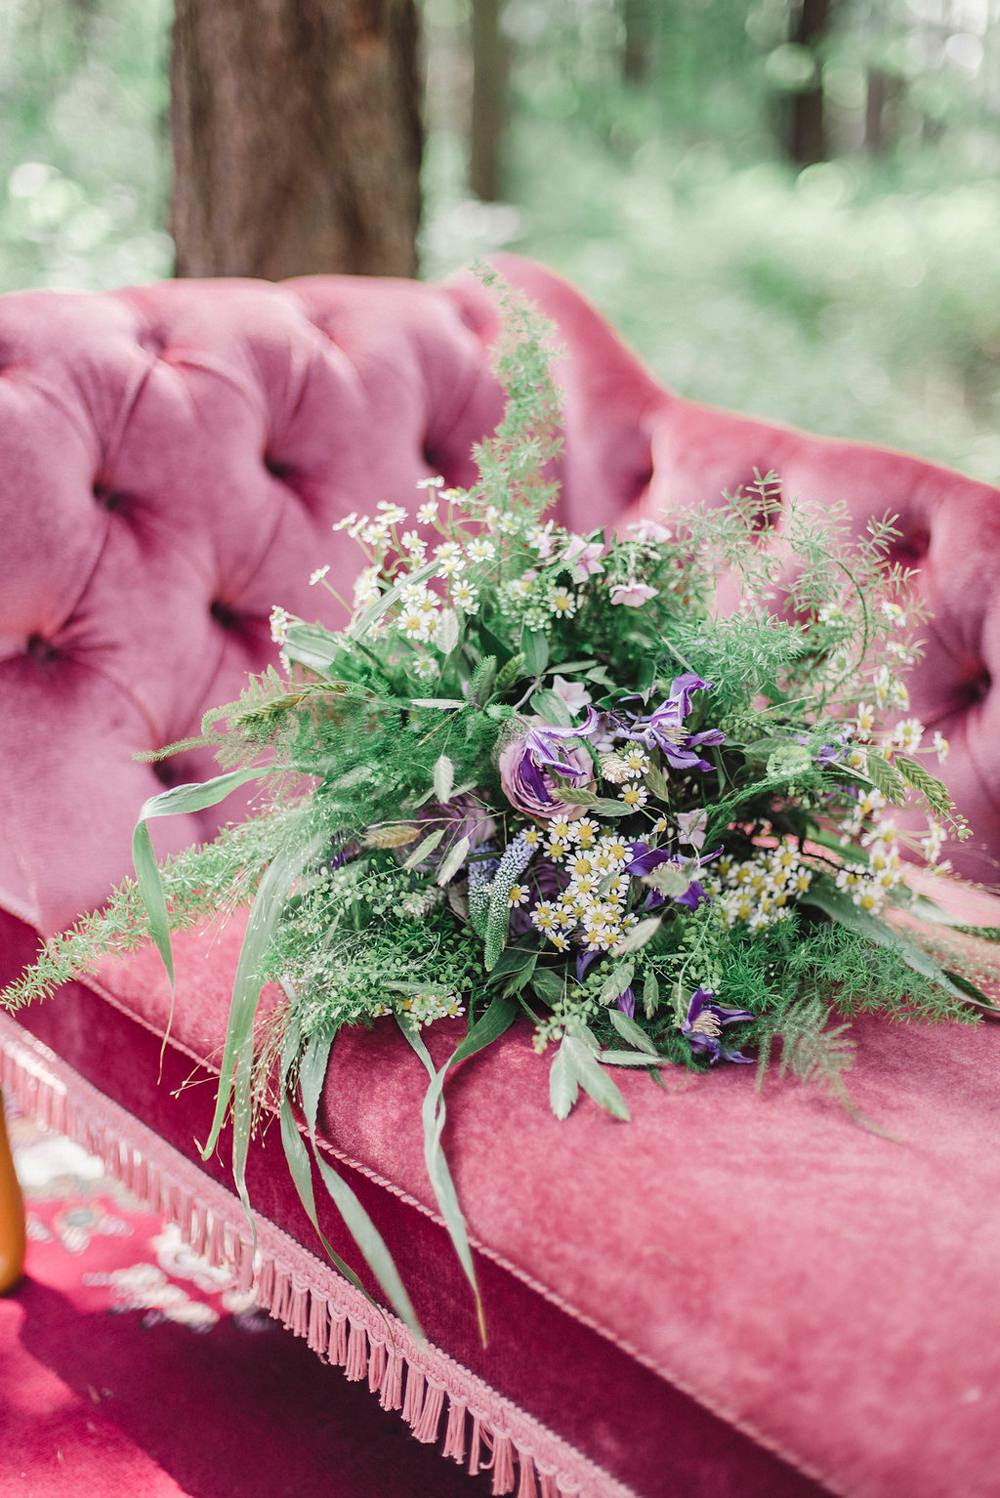 Velvet Chair Sofa Seat Bride Bridal Flowers Bouquet Greenery Foliage Purple Rose Daisy Wild Boho Woodland Wedding Ideas Camp Katur Emily Olivia Photography